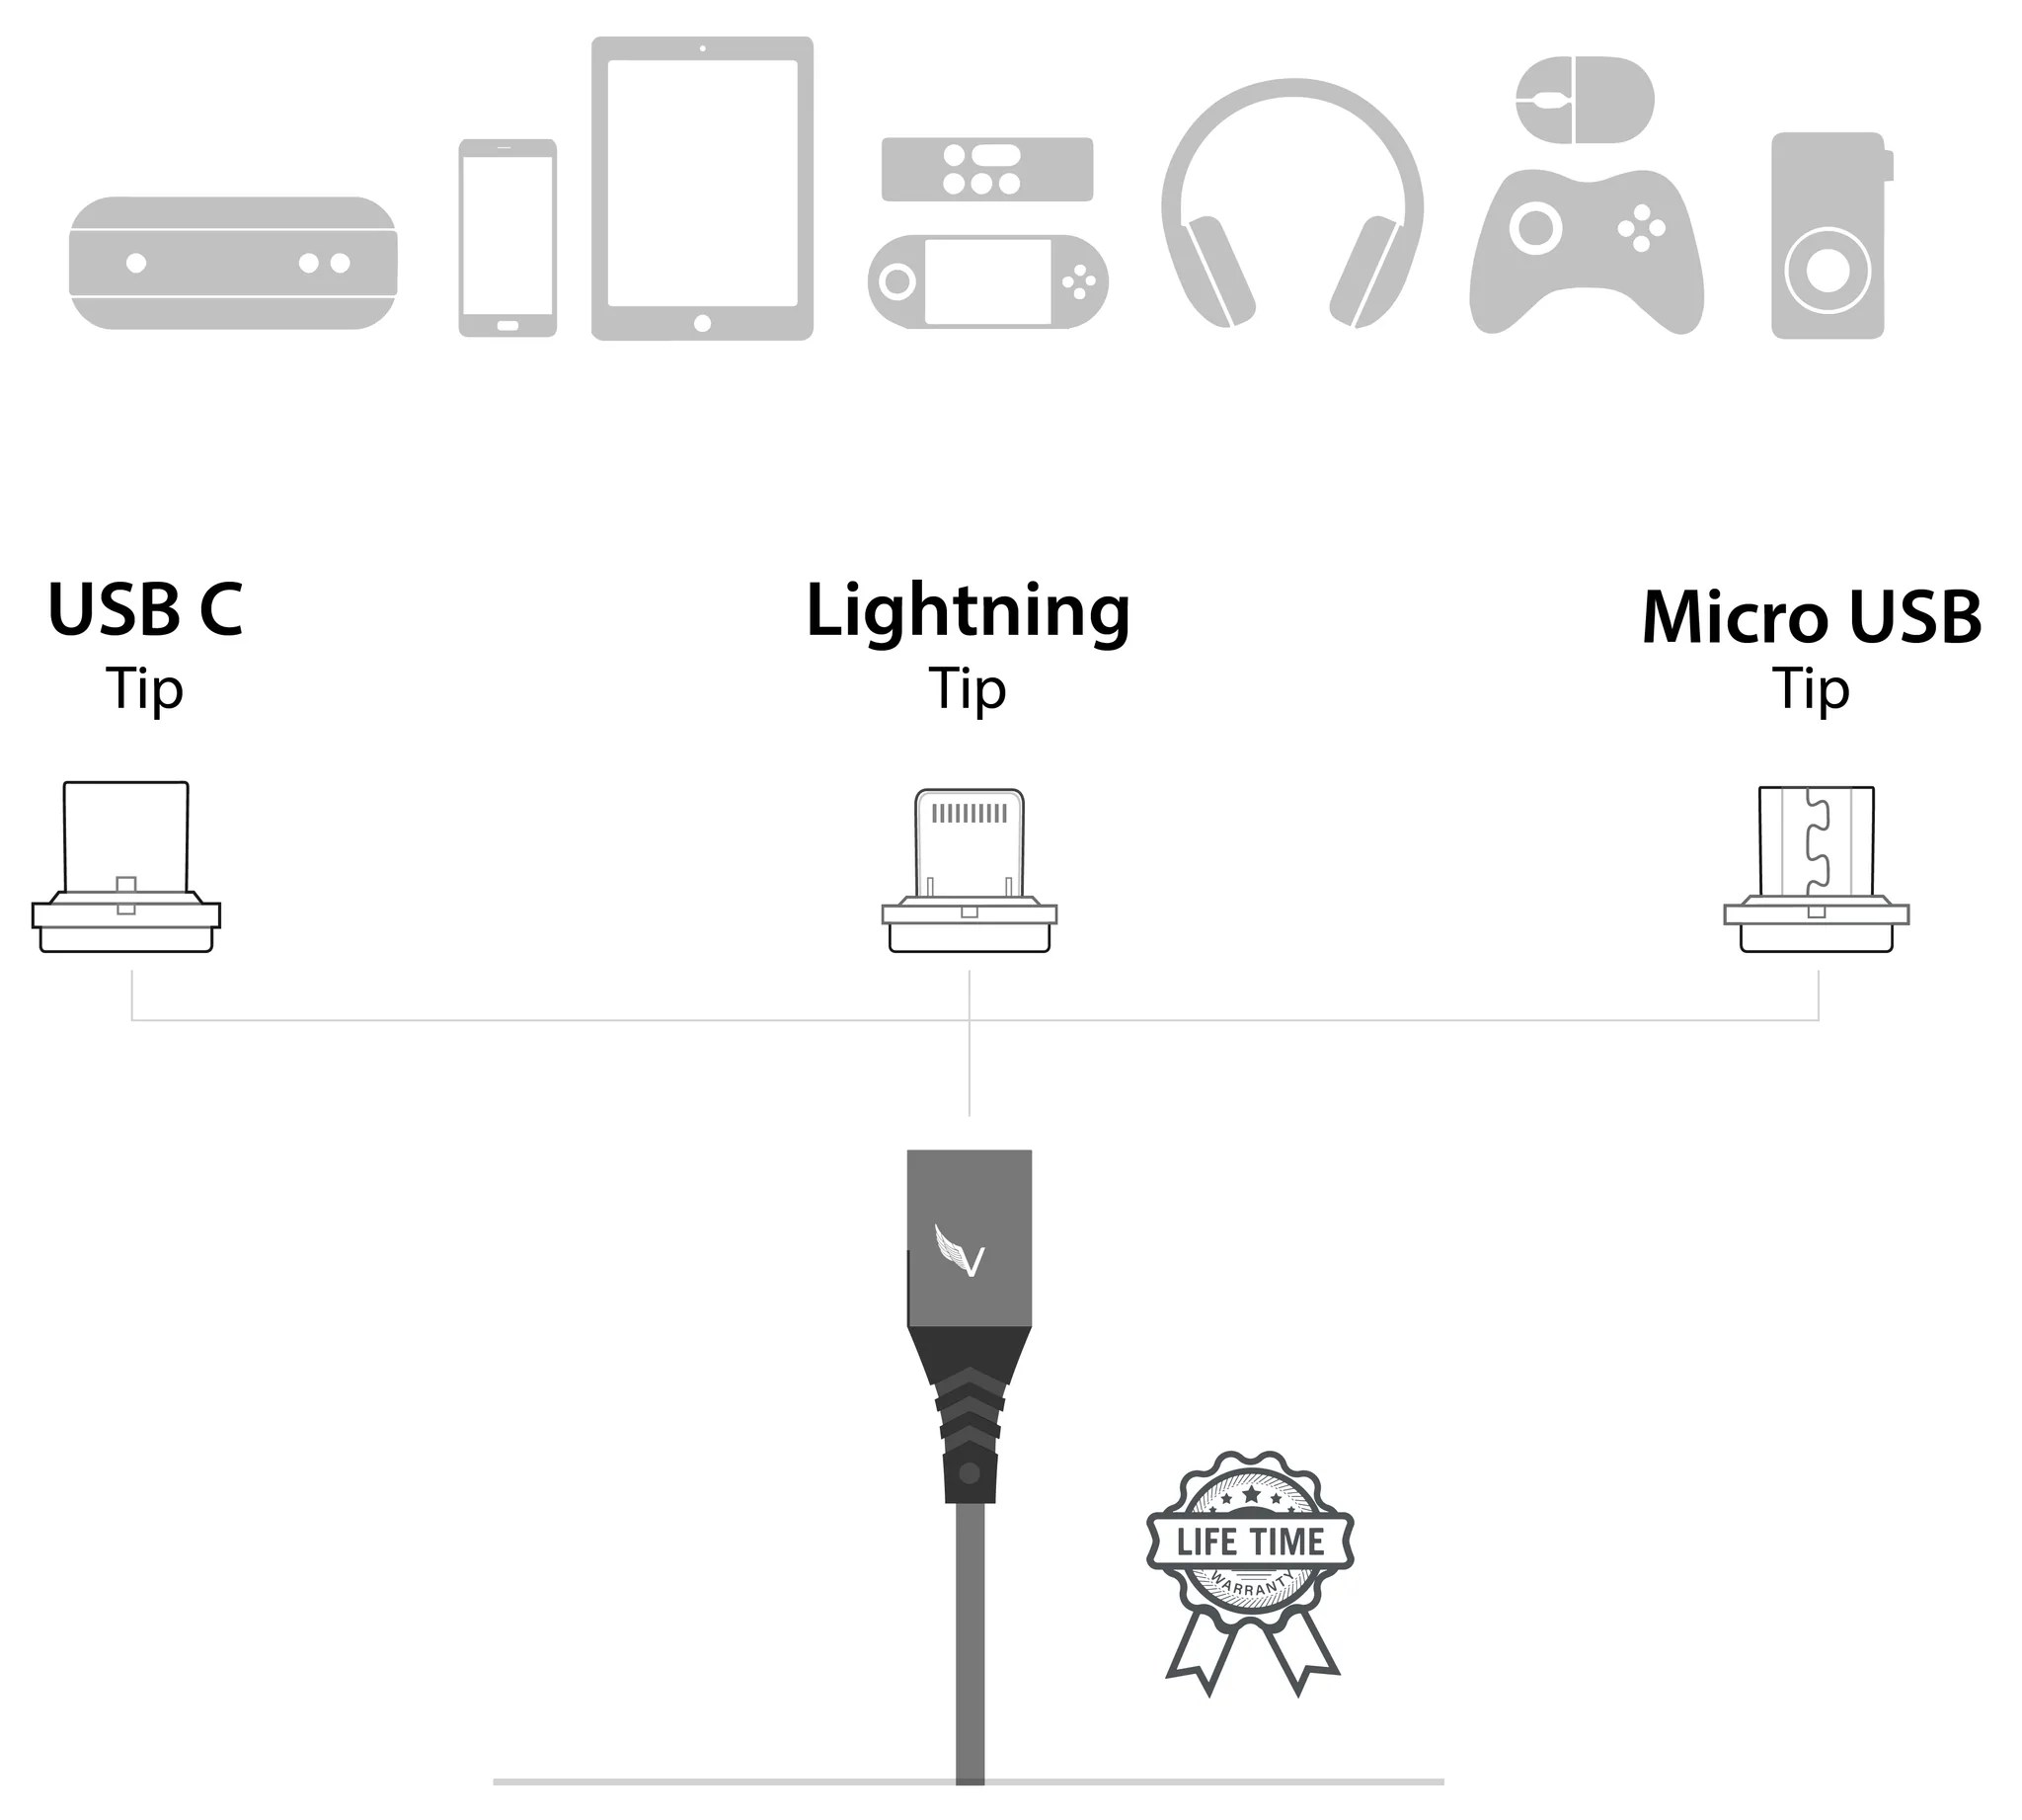 medium resolution of volta 2 0 has redefined what it means to charge multiple devices with one cable it supports charging and data transfer on a wide range of devices